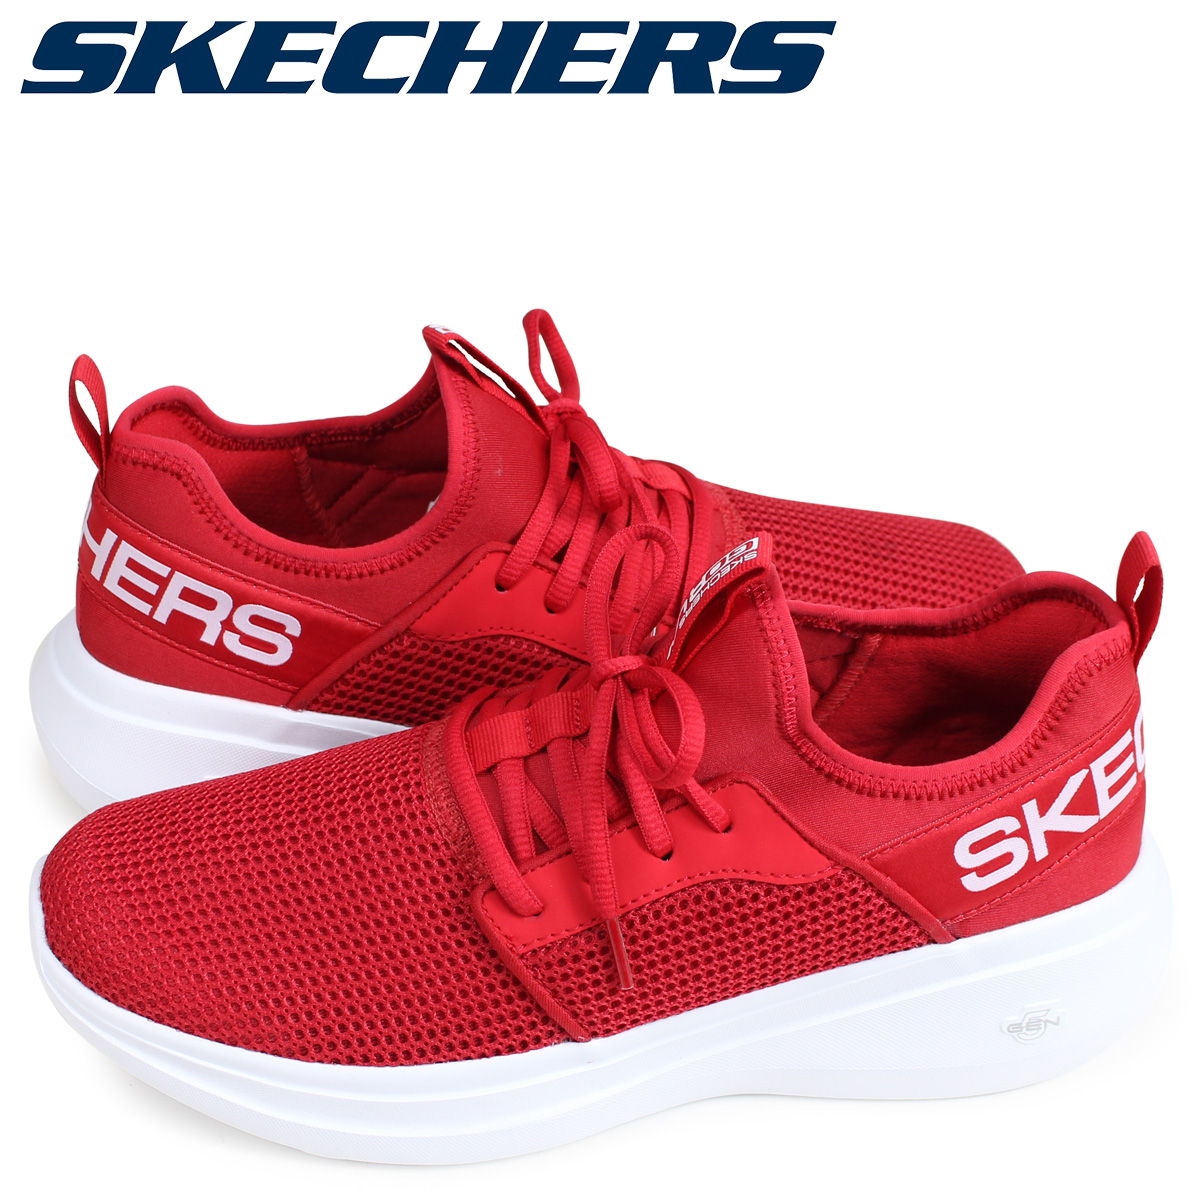 SKECHERS go orchid sneakers men